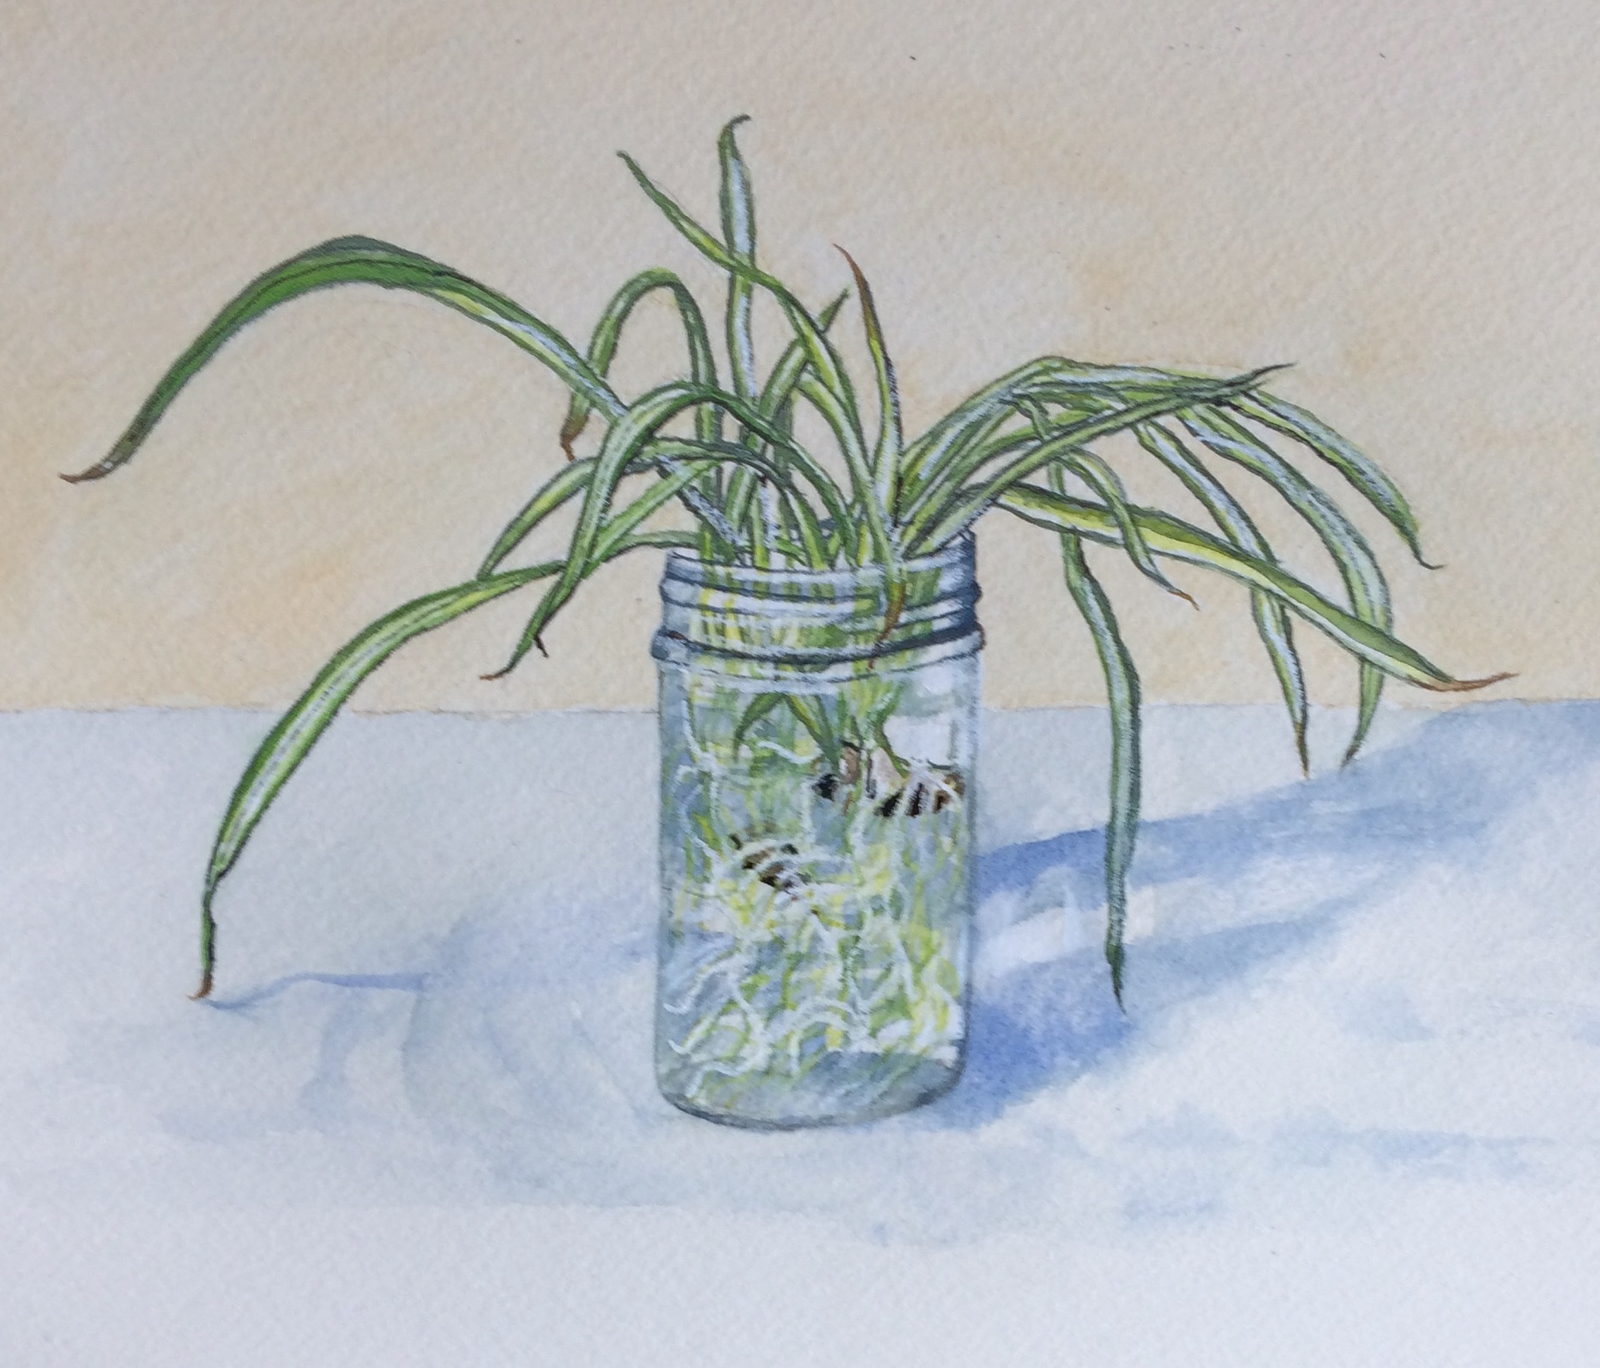 Spider plant rooting